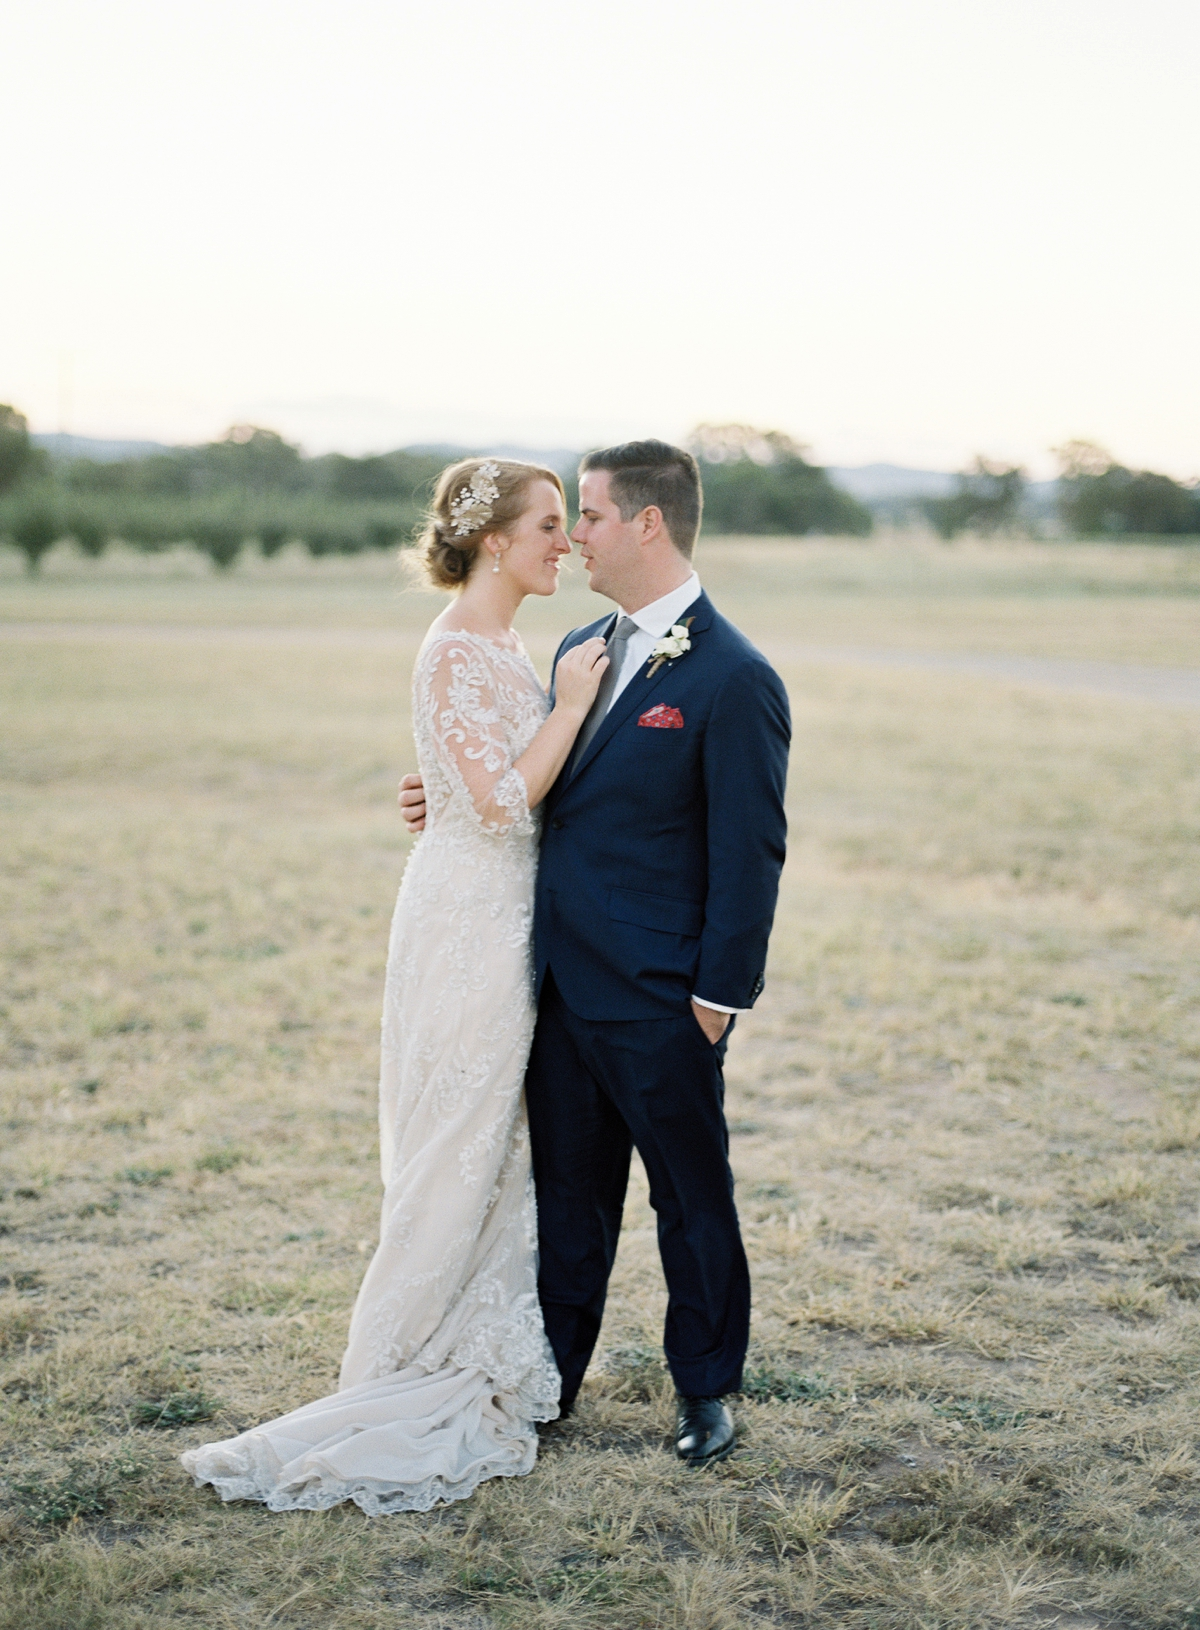 The Vine Grove Mudgee Wedding, Photography by Mr Edwards_1831.jpg